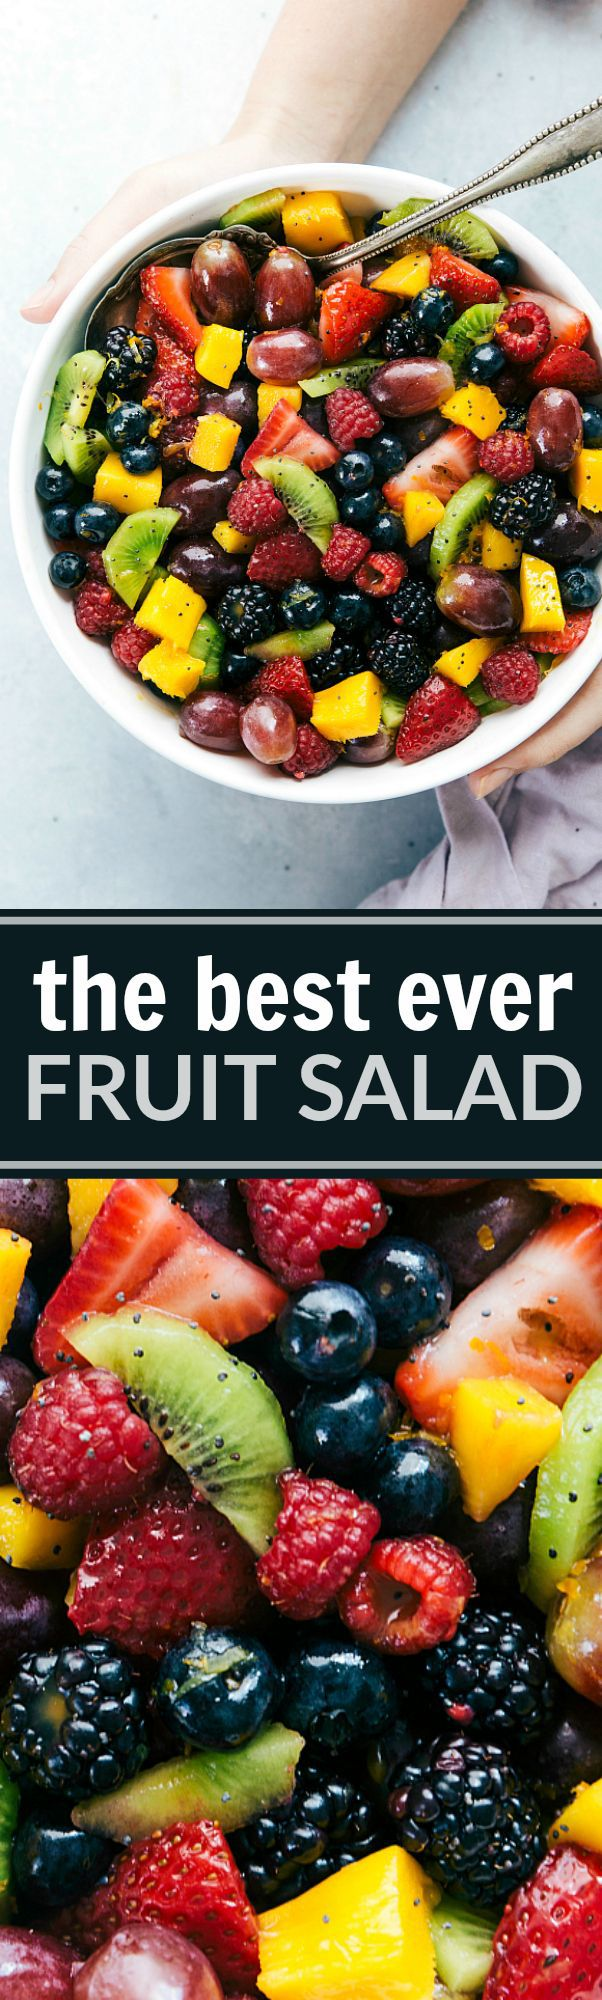 The best ever fruit salad coated in a simple blackberry lime dressing. Perfect for potlucks, summer parties, or a side dish to your meals! quick diet veggies